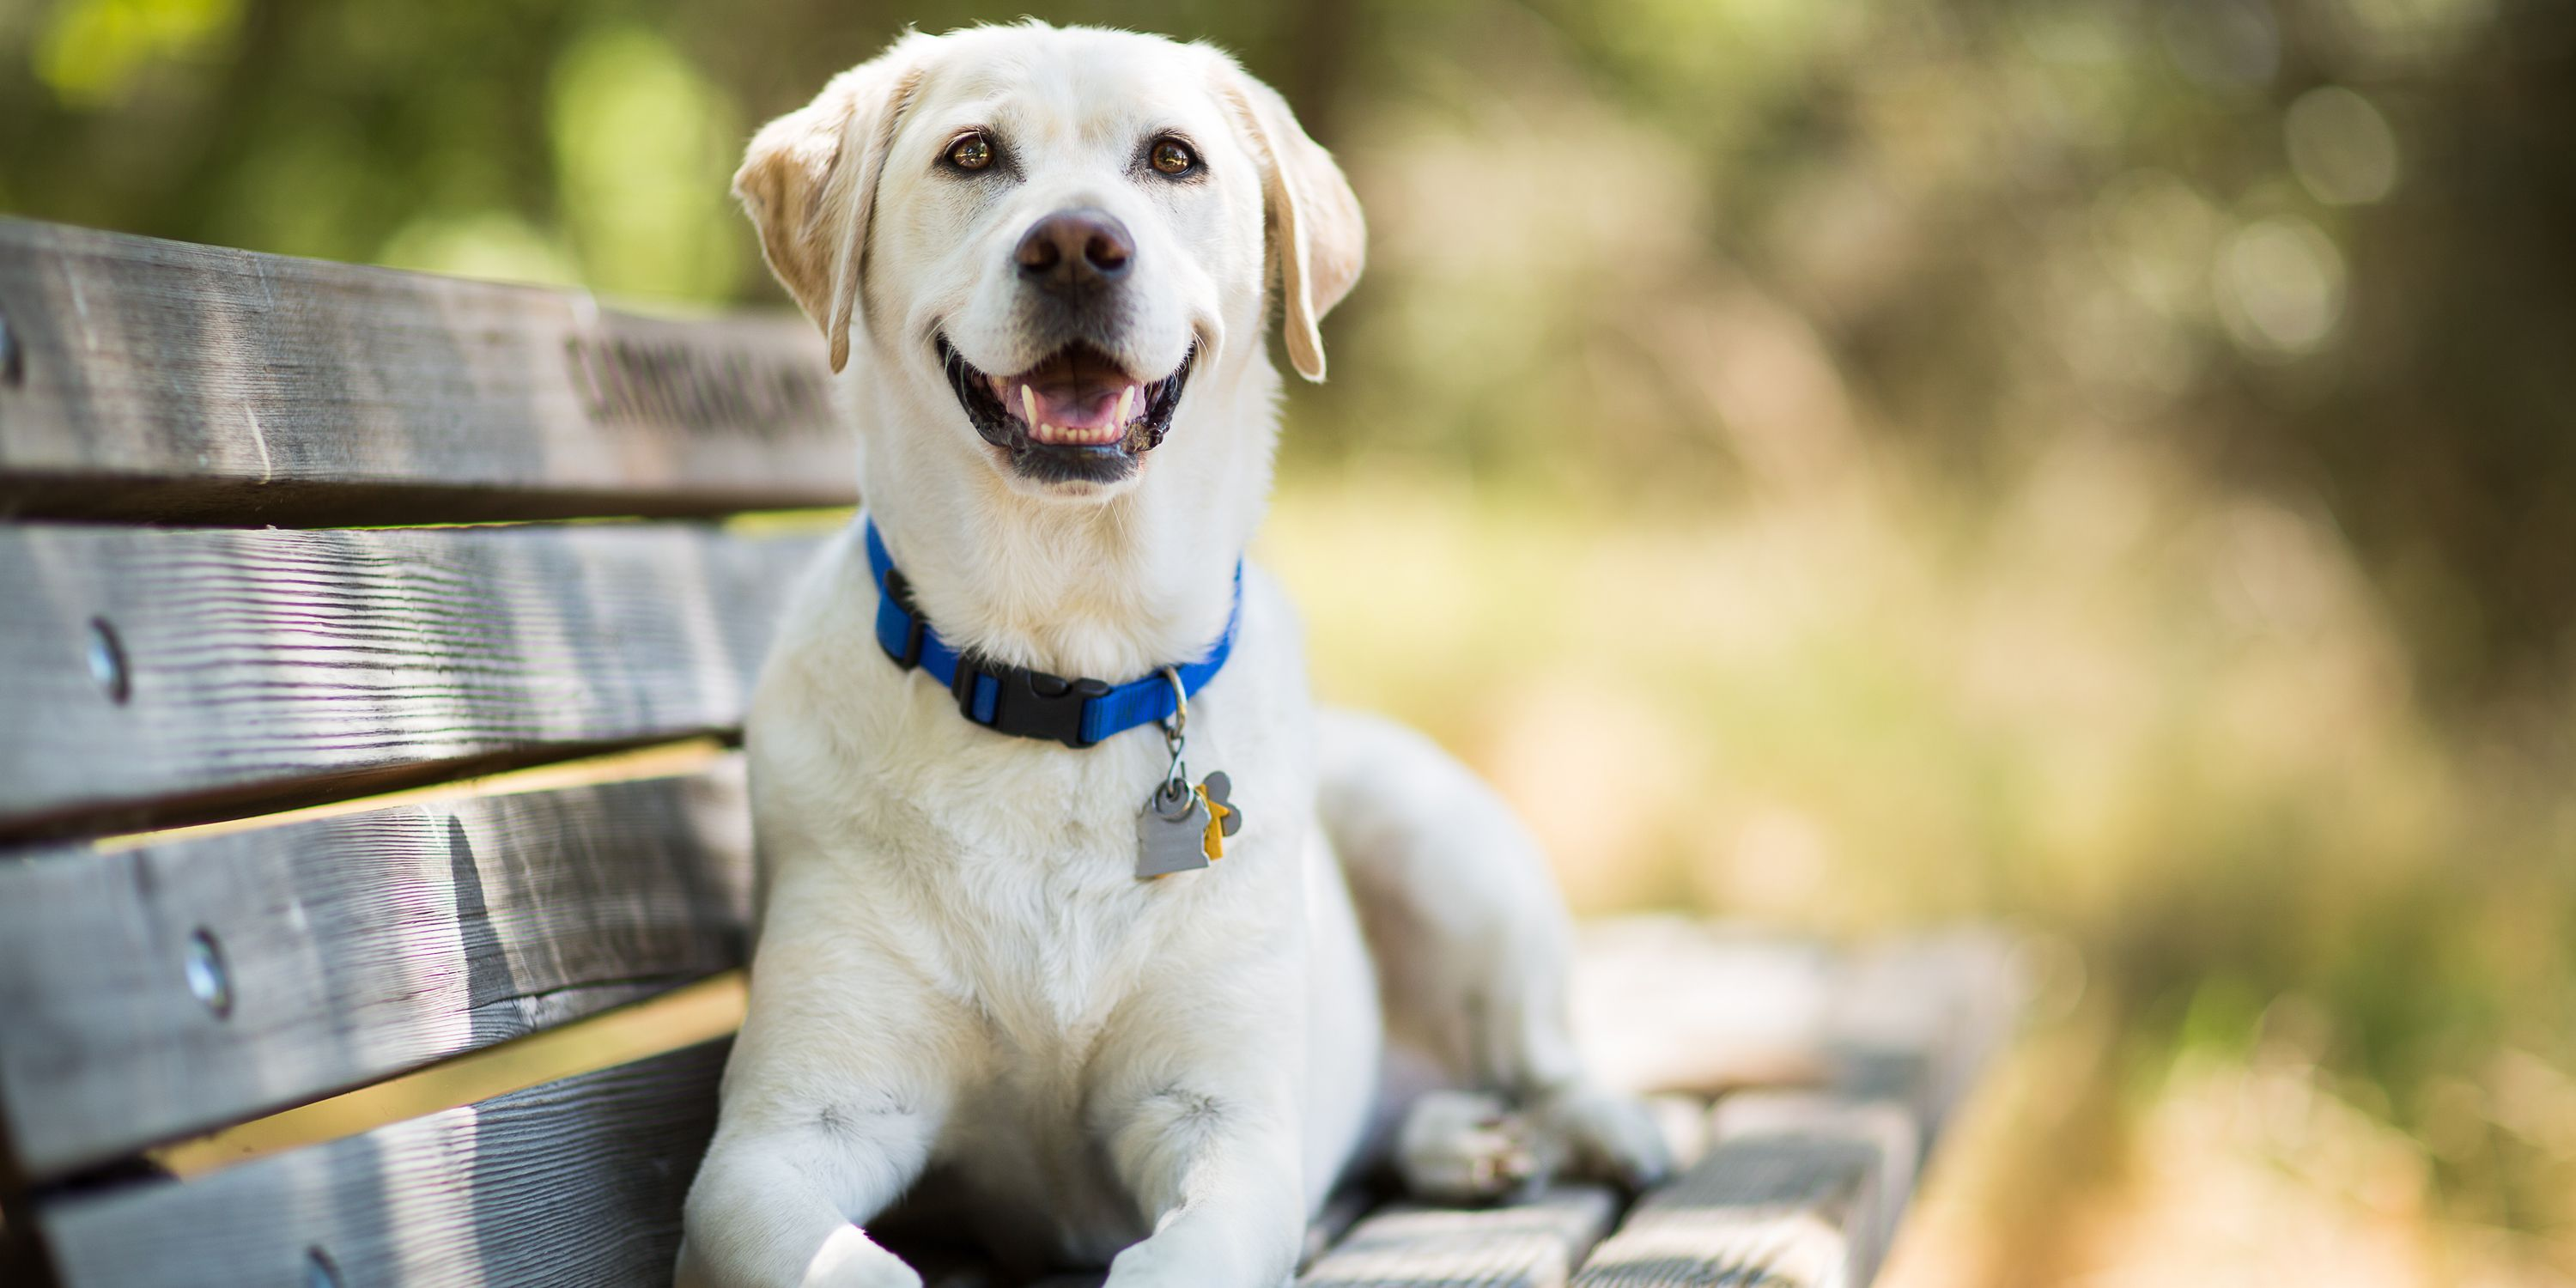 Dog Health Questions - Dog Advice from a Vet